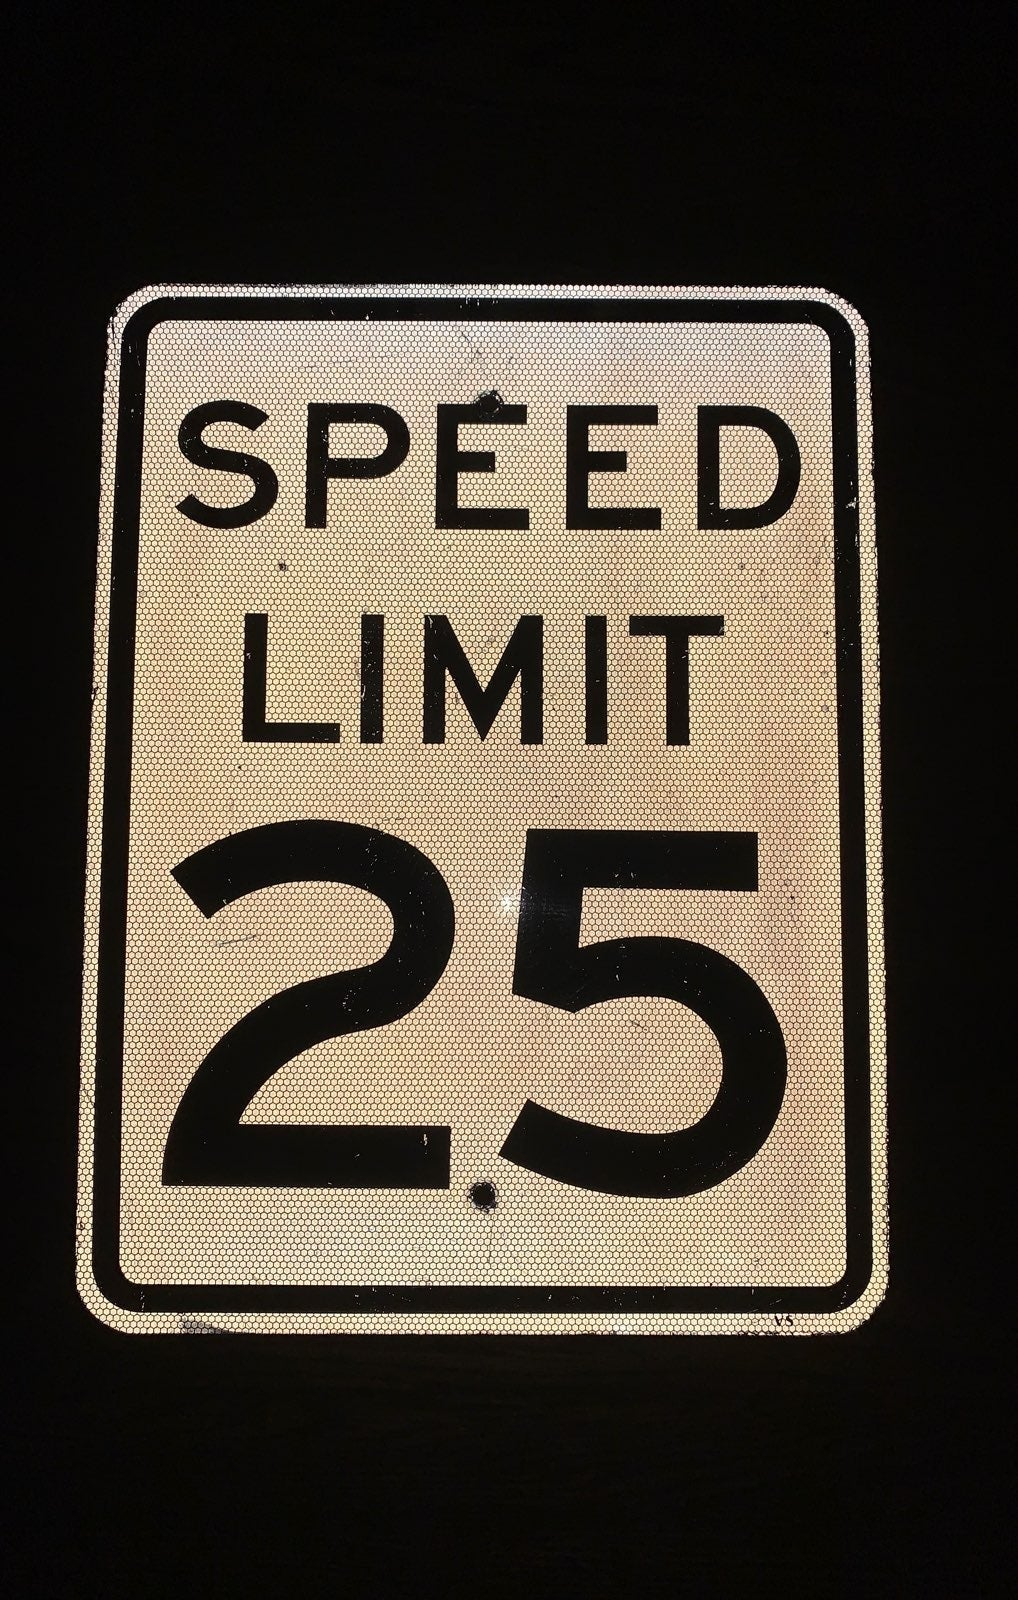 Authentic Speed limit sign from the 90's